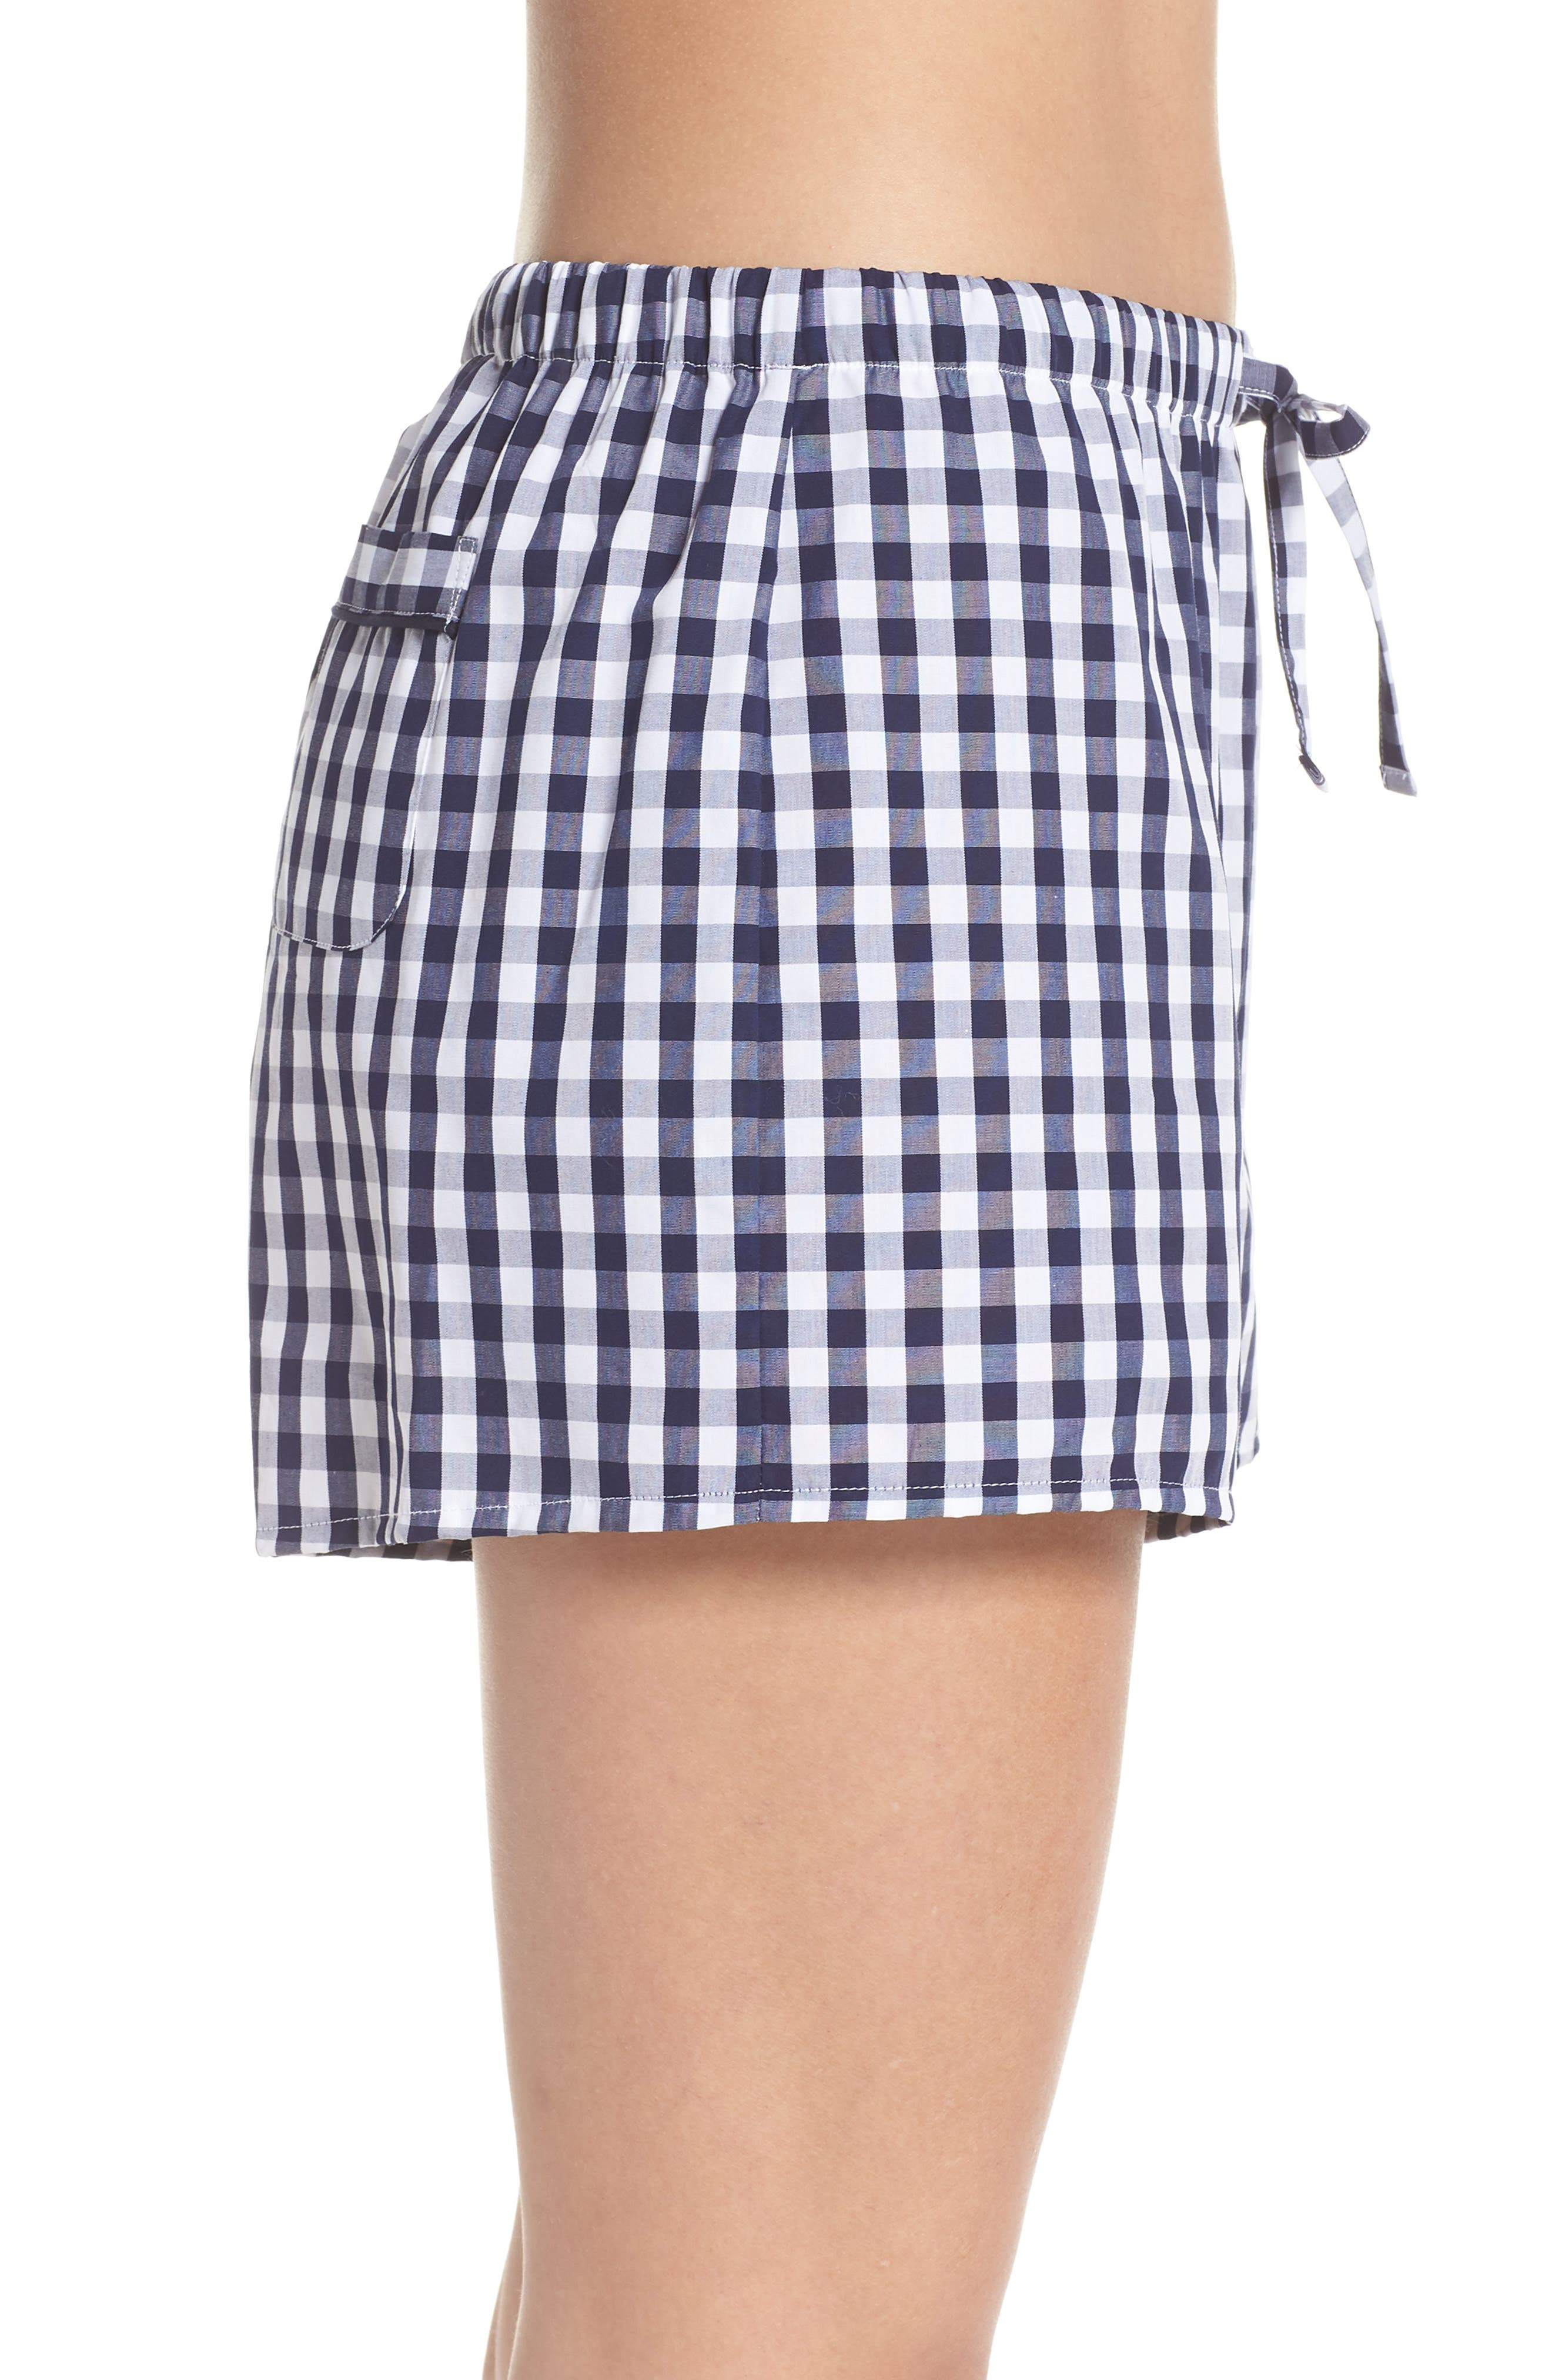 Paloma Women's Pajama Shorts,                             Alternate thumbnail 4, color,                             LARGE GINGHAM BLUE